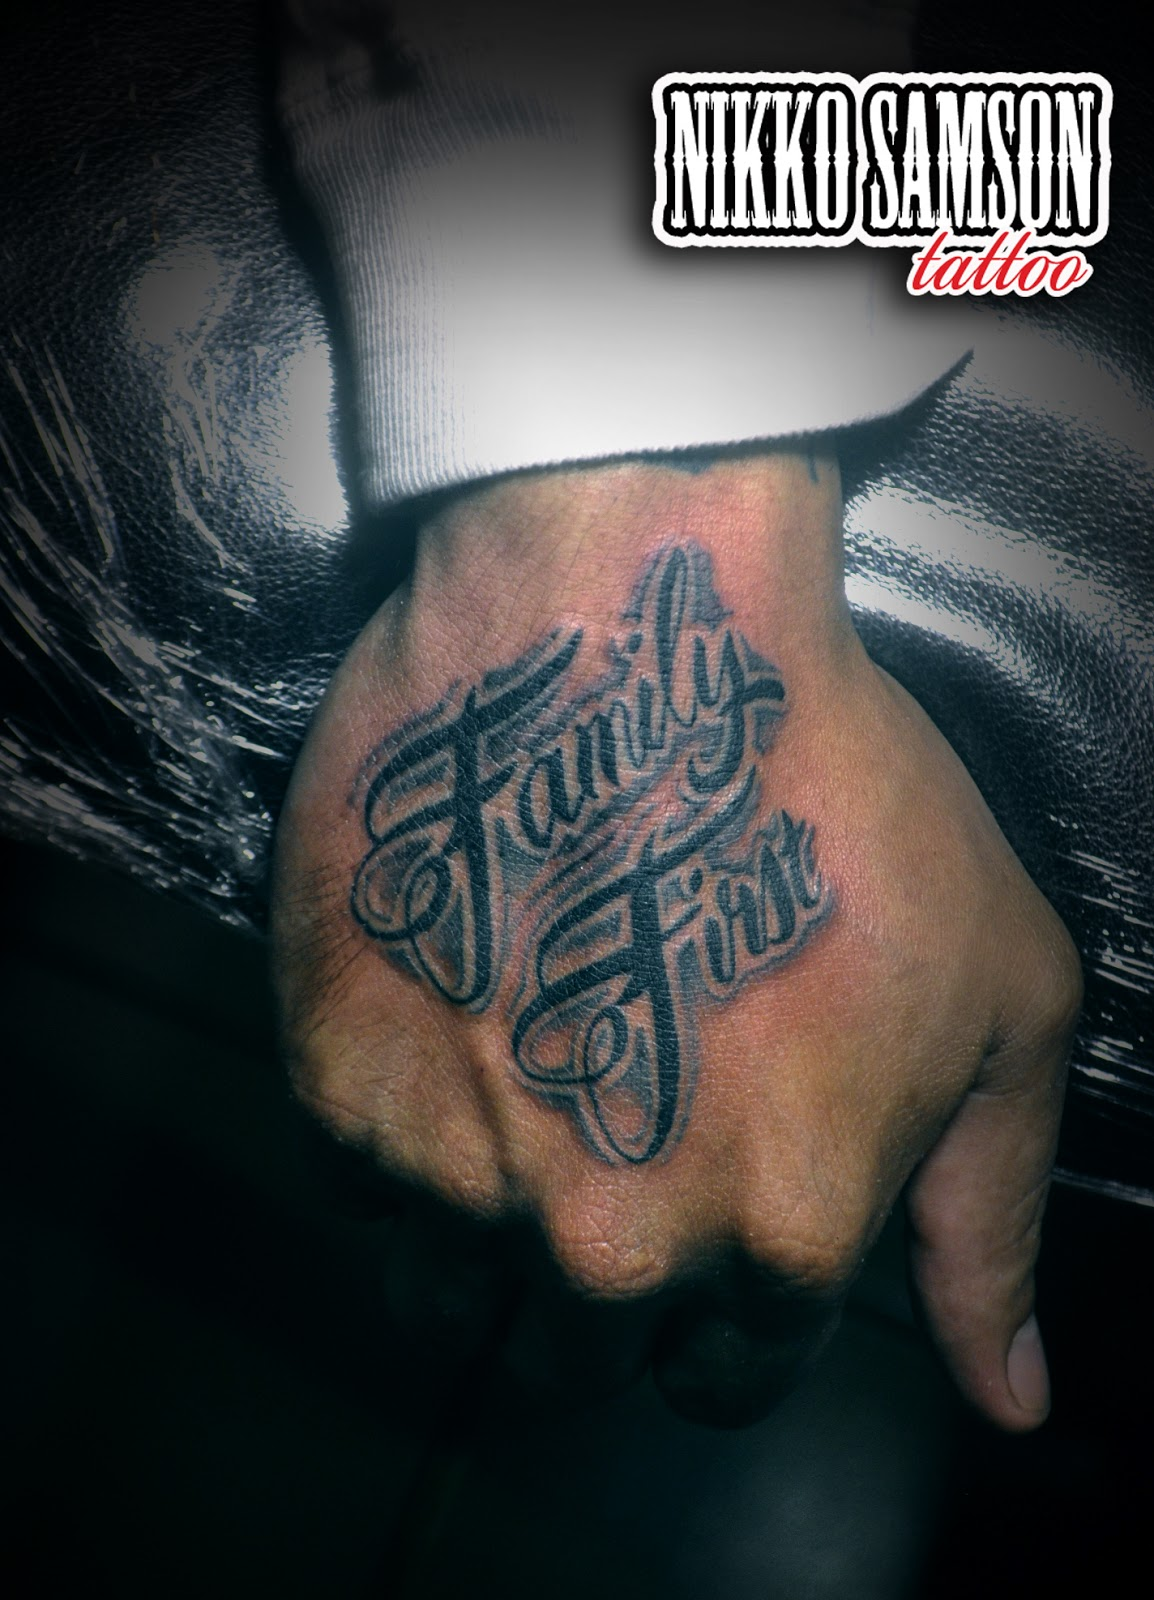 Nikko samson tattoo family first for Tattoo of family